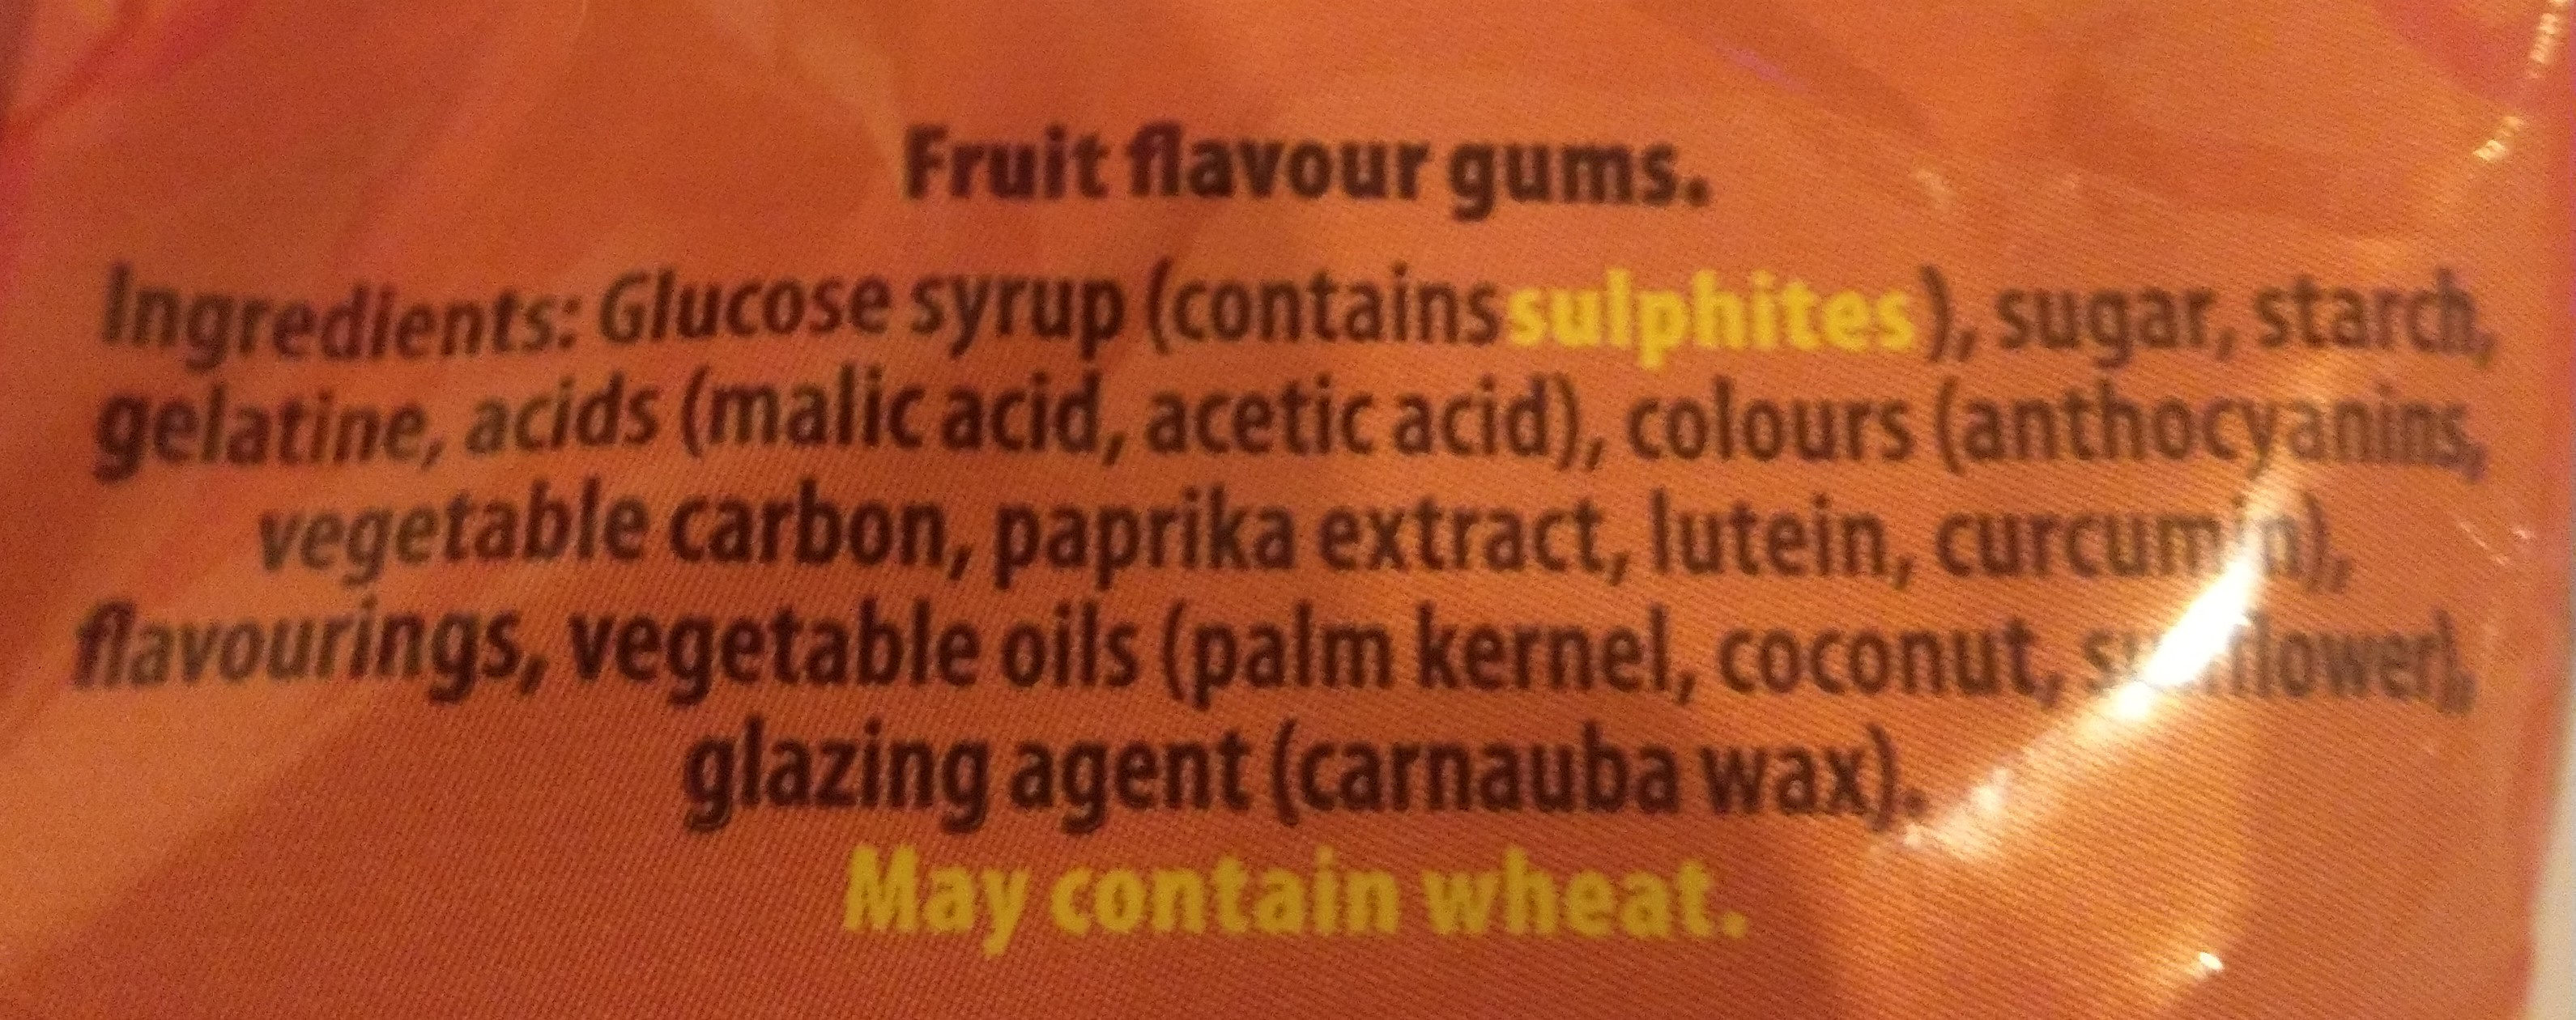 Maynards wine gums candy - Ingredients - en